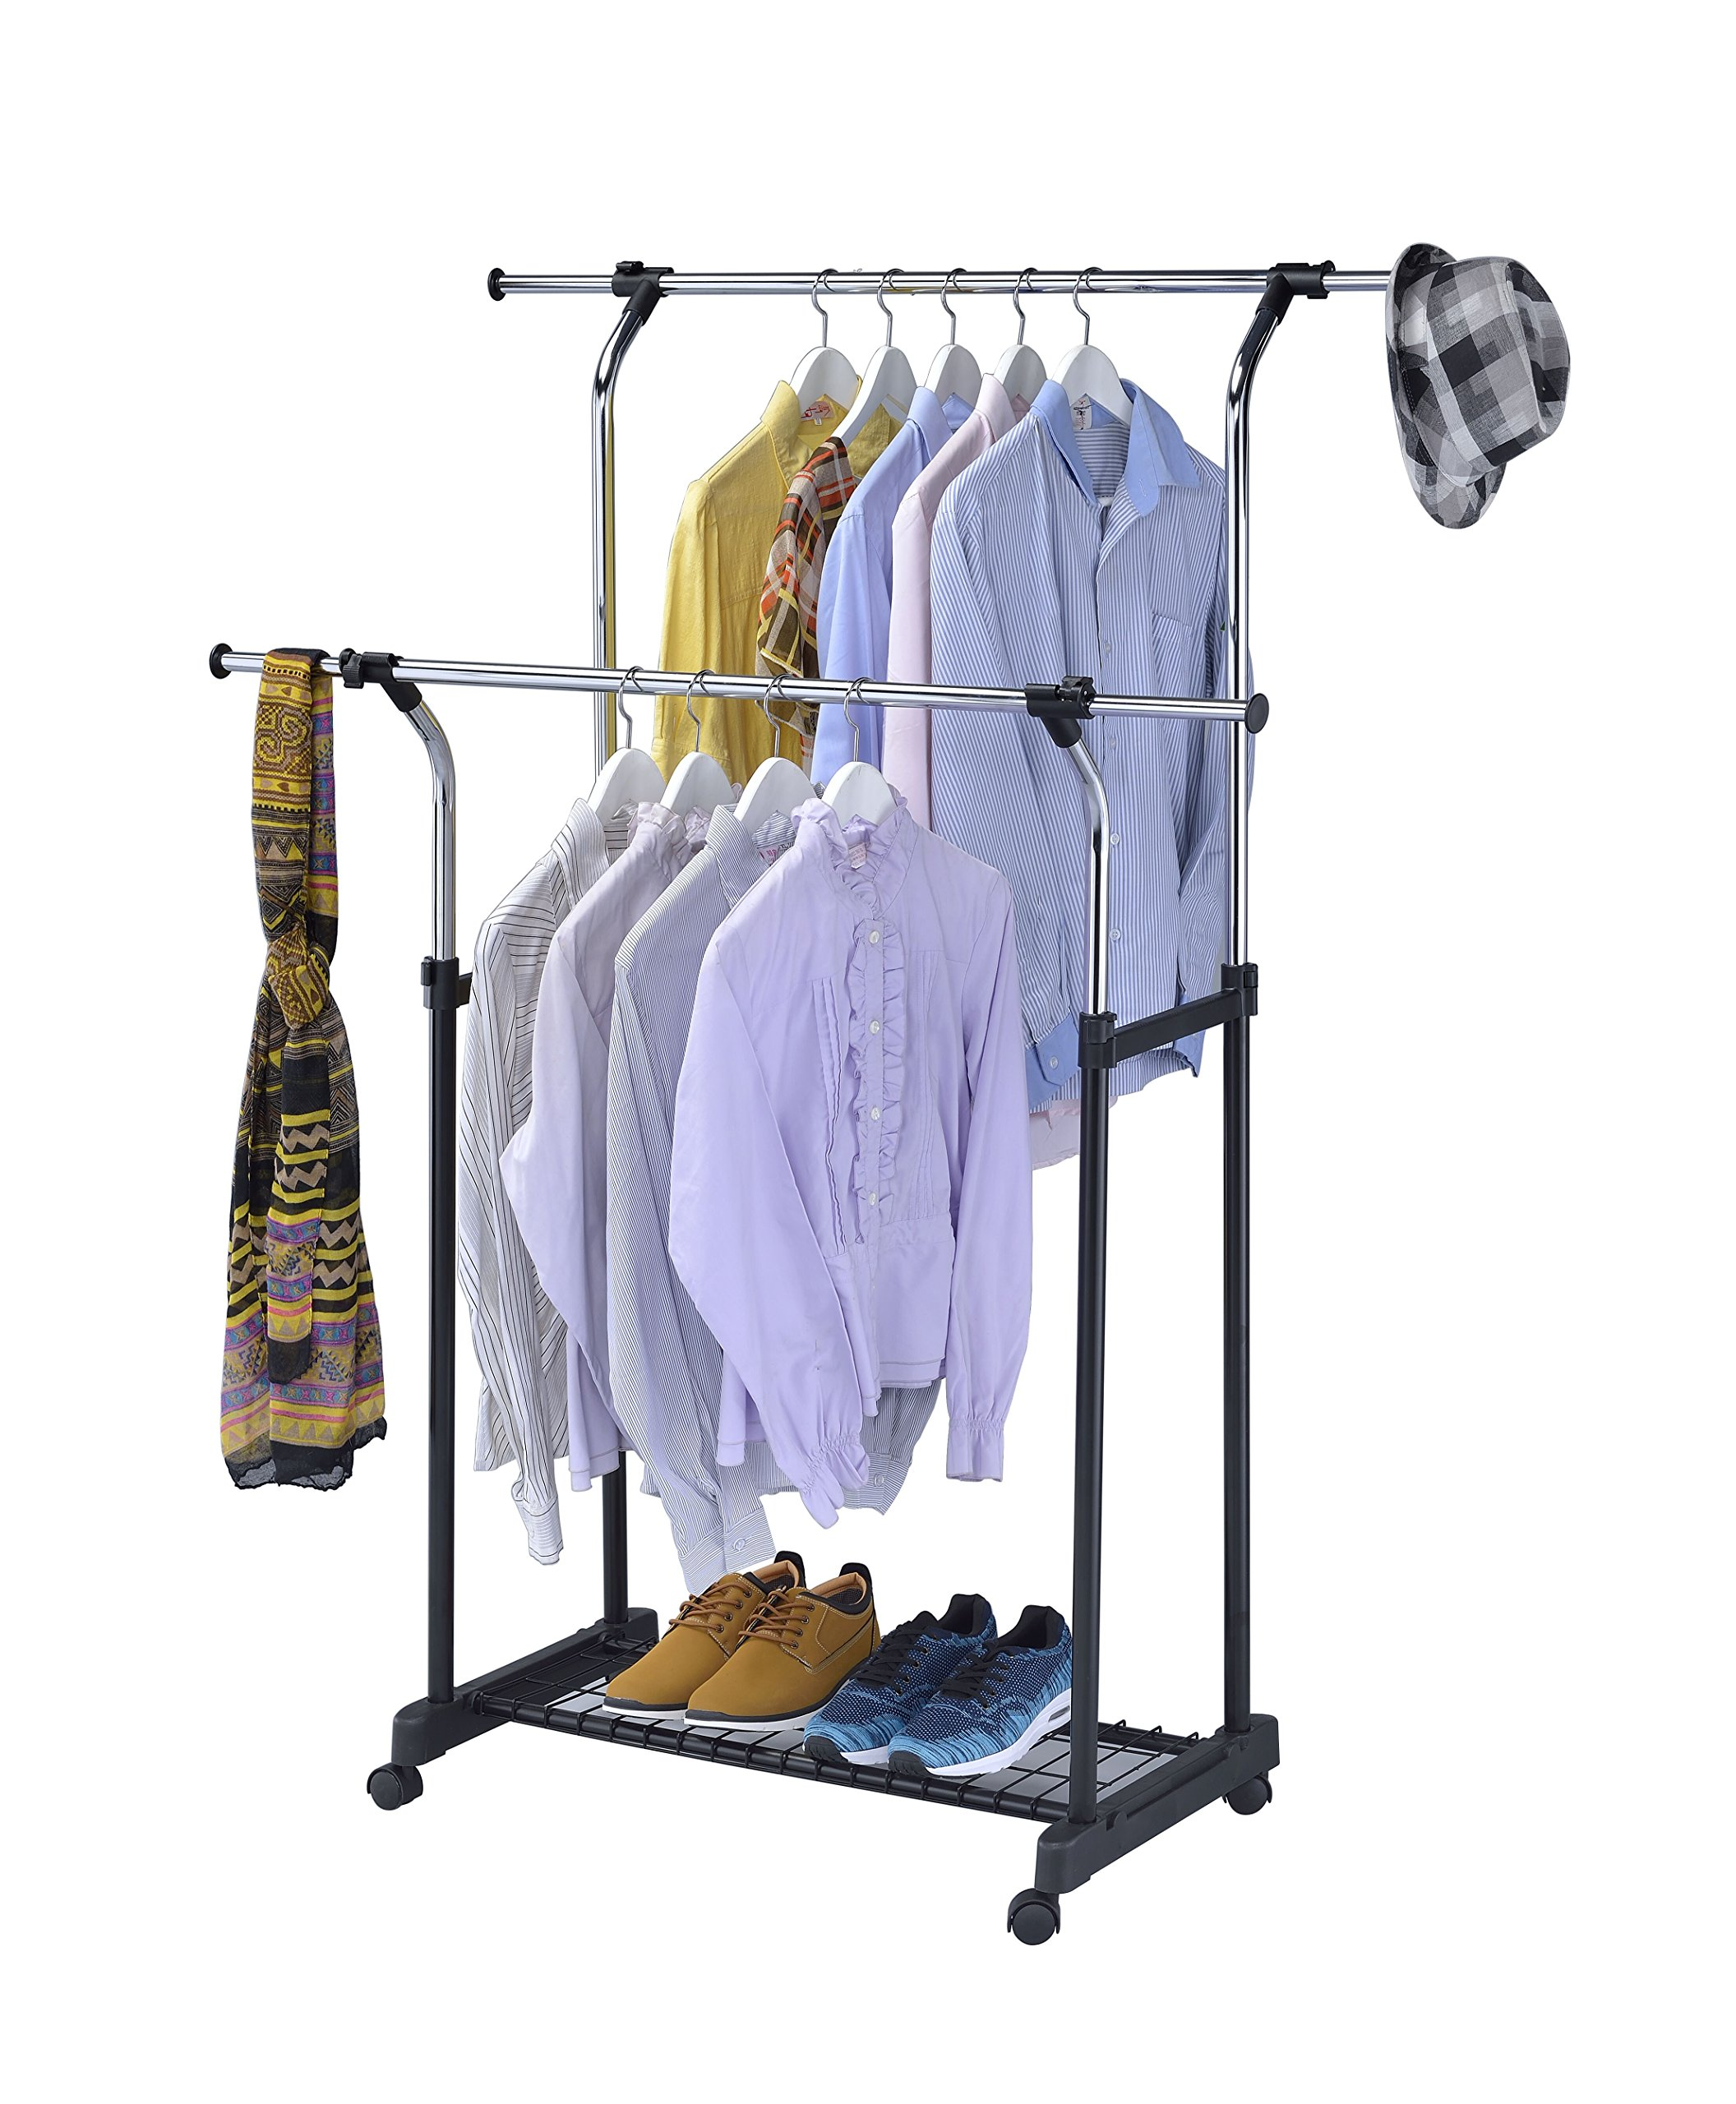 kroft hanging by garment clothes offers a shelf and rack modern pin